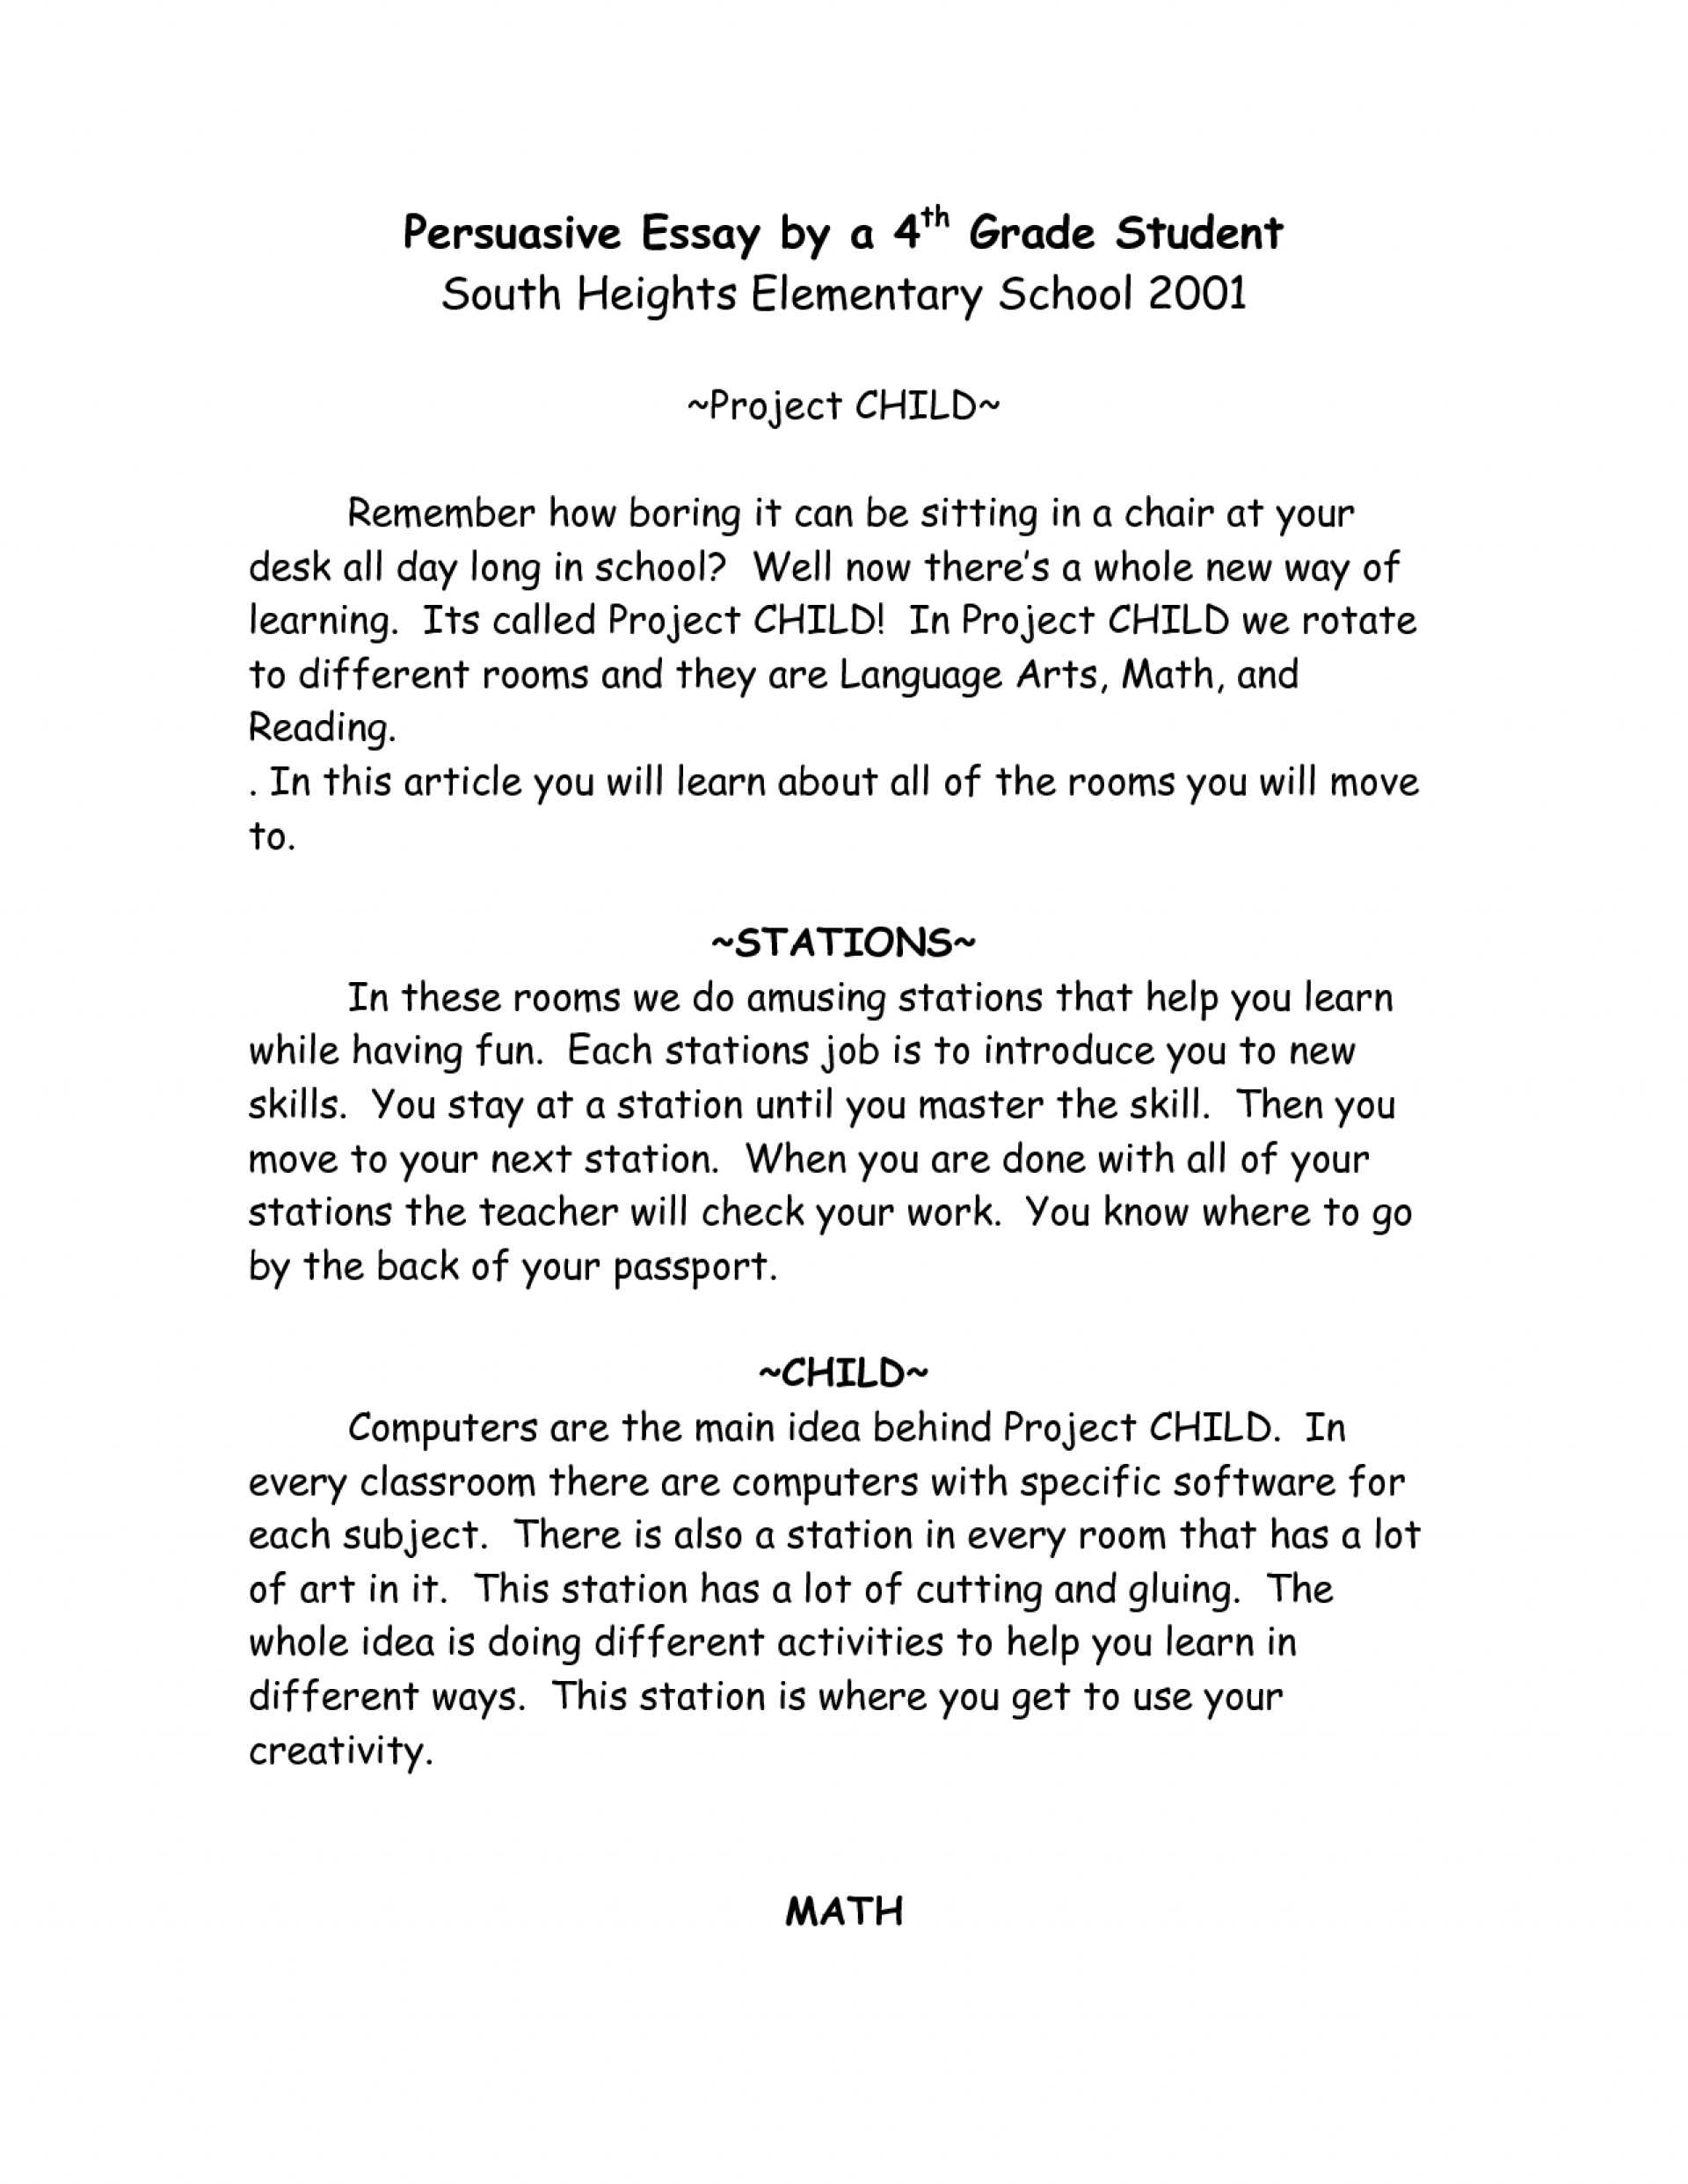 014 How To Start An Essay 2nmmxqusgx Amazing With A Hook Quote Analysis On Book 1920